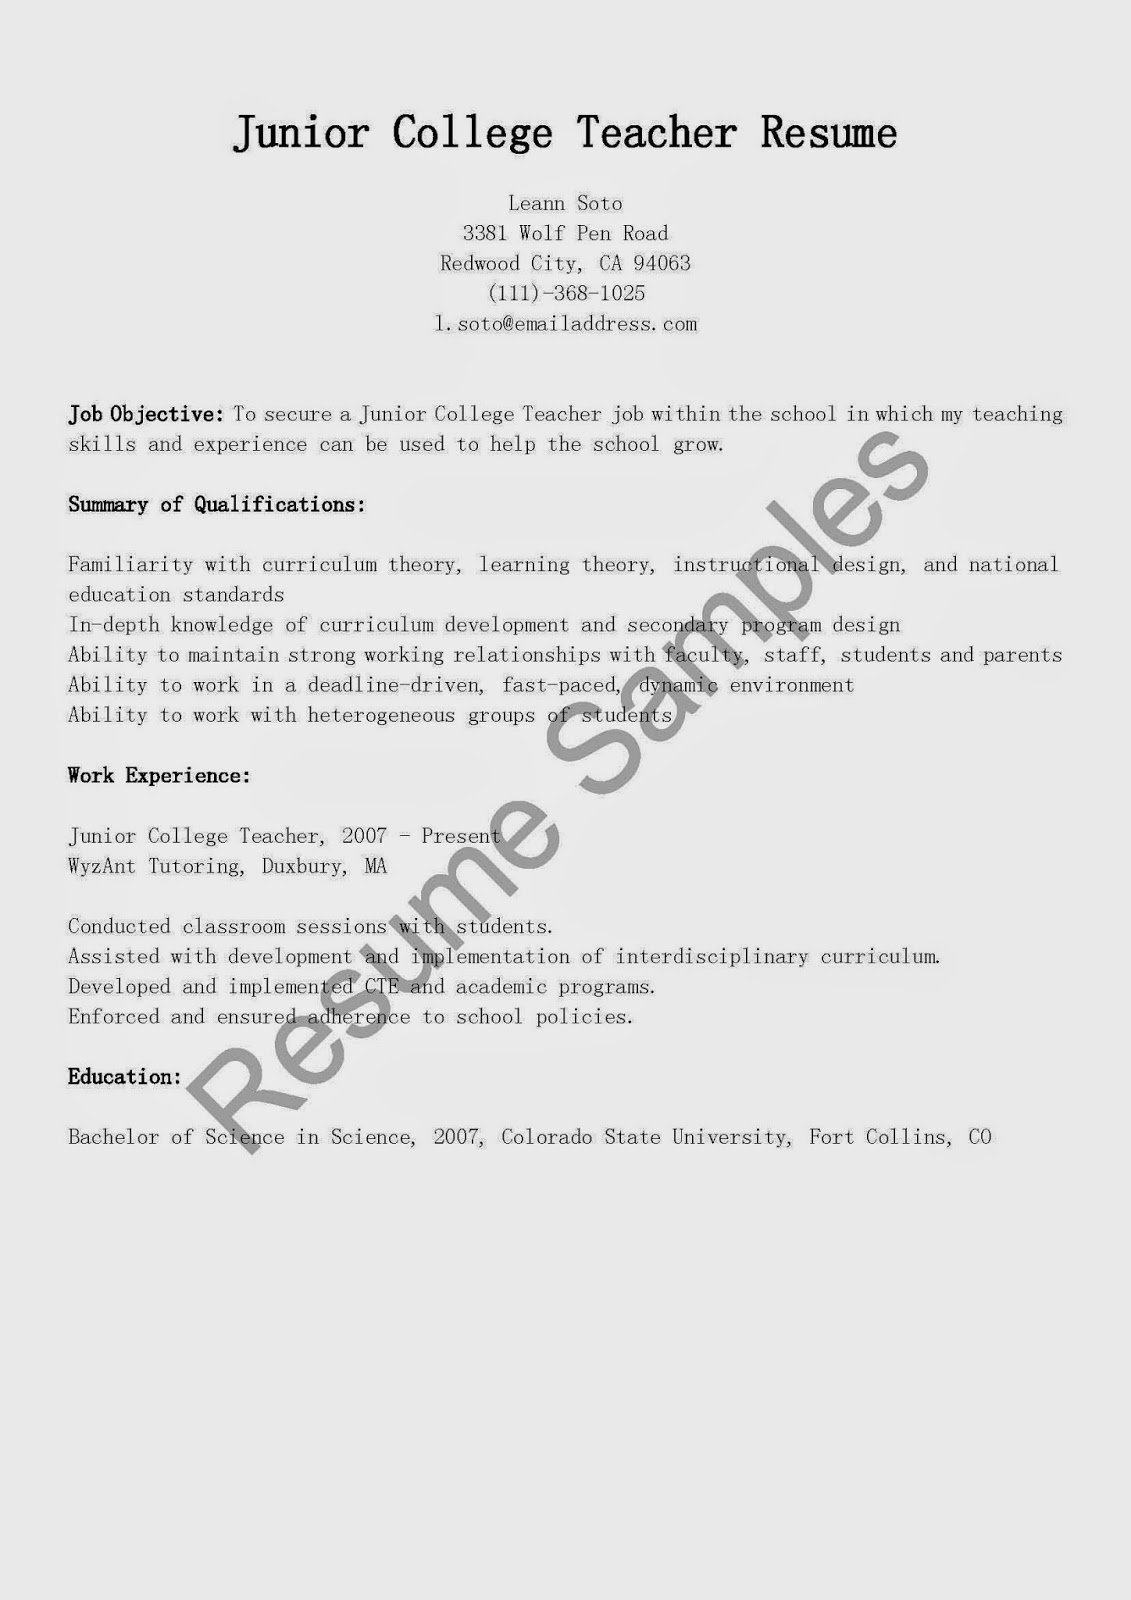 Ra Resume Resume Samples Junior College Teacher Resume Sample